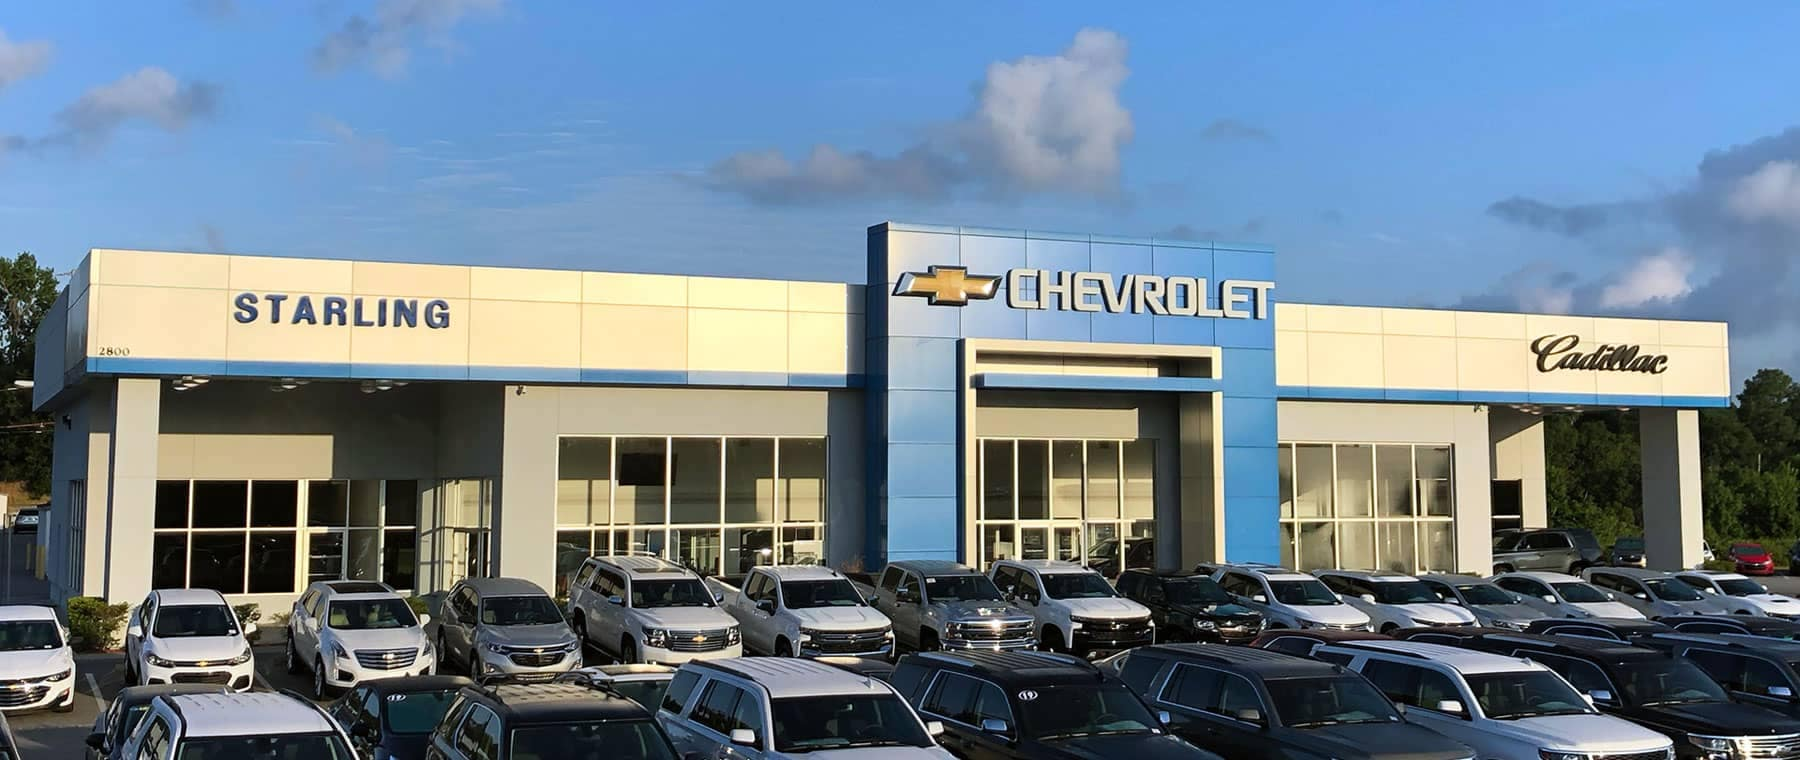 Starling Chevrolet We Re Your Premier Deland Chevy Dealers